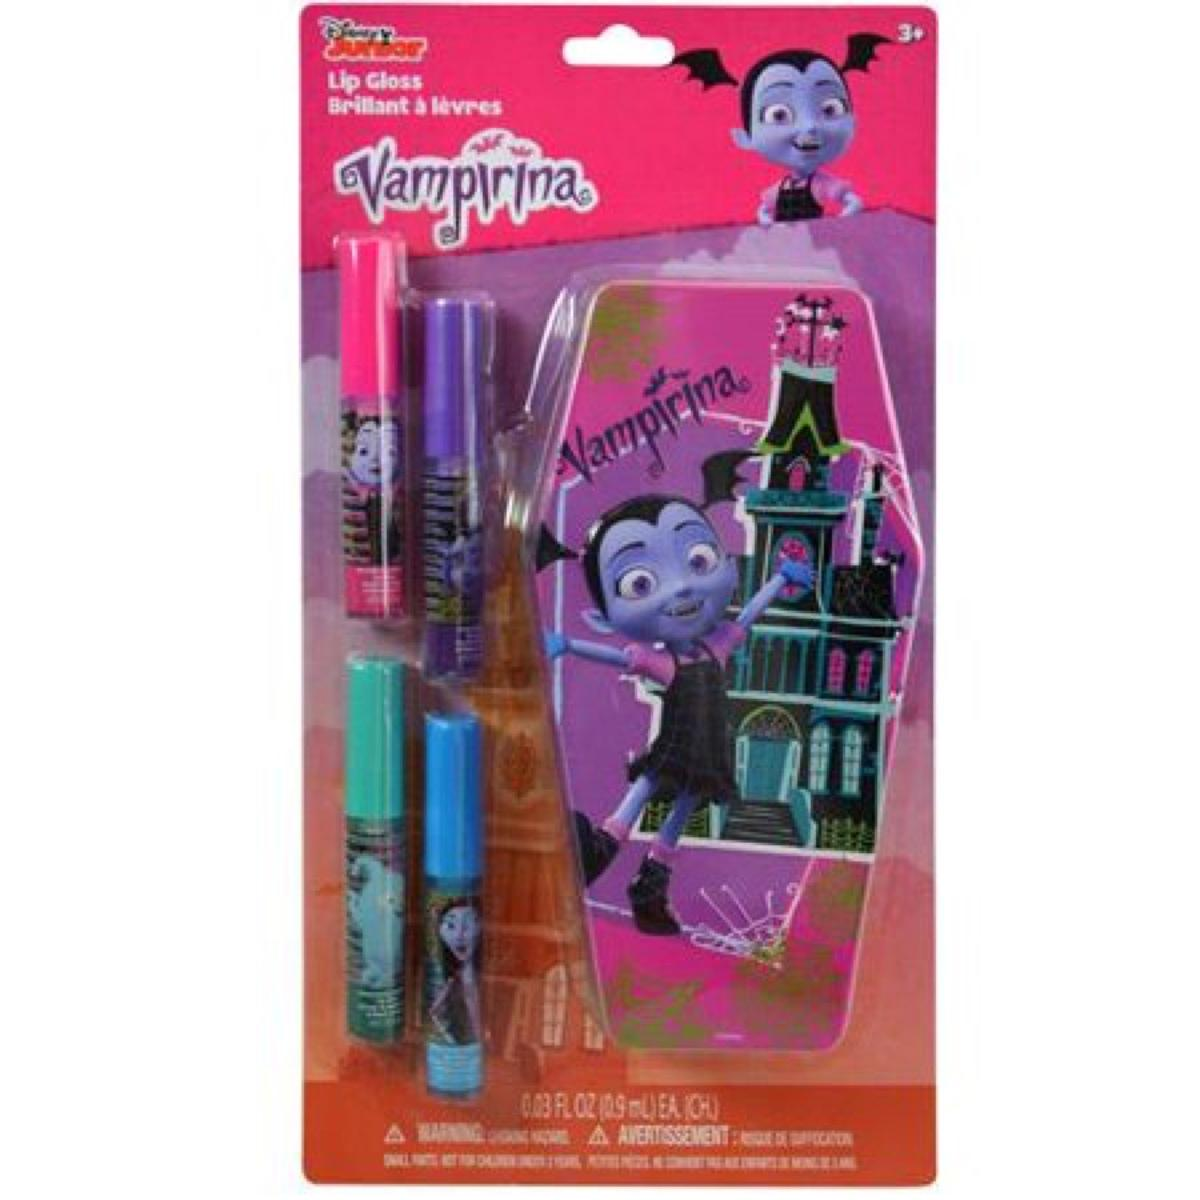 Vampirina 4 Pack Lip Gloss with Coffin Tin